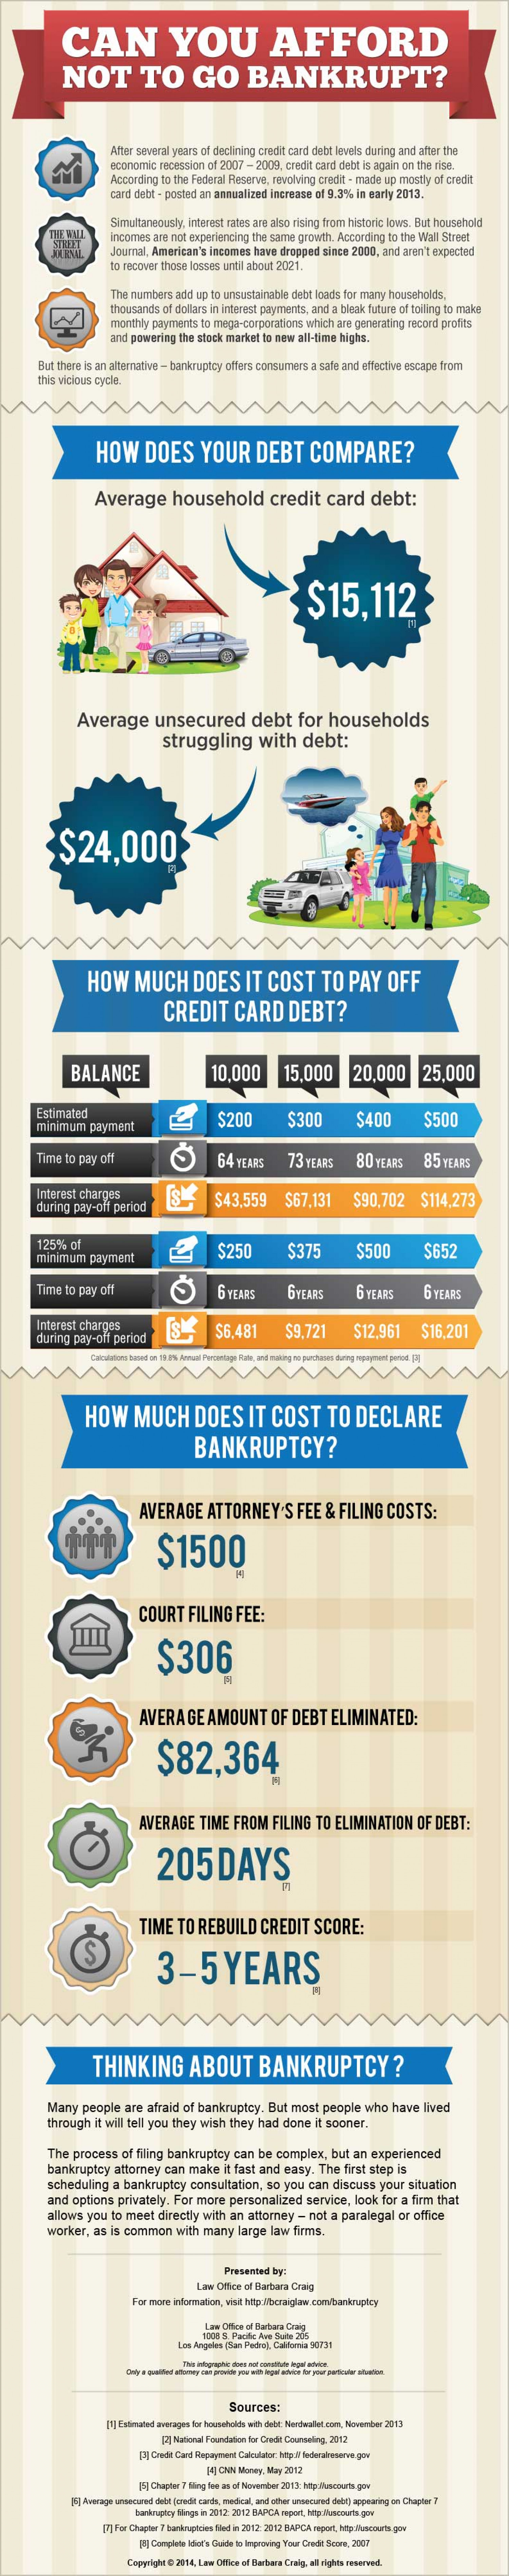 The Cost of Bankruptcy Infographic